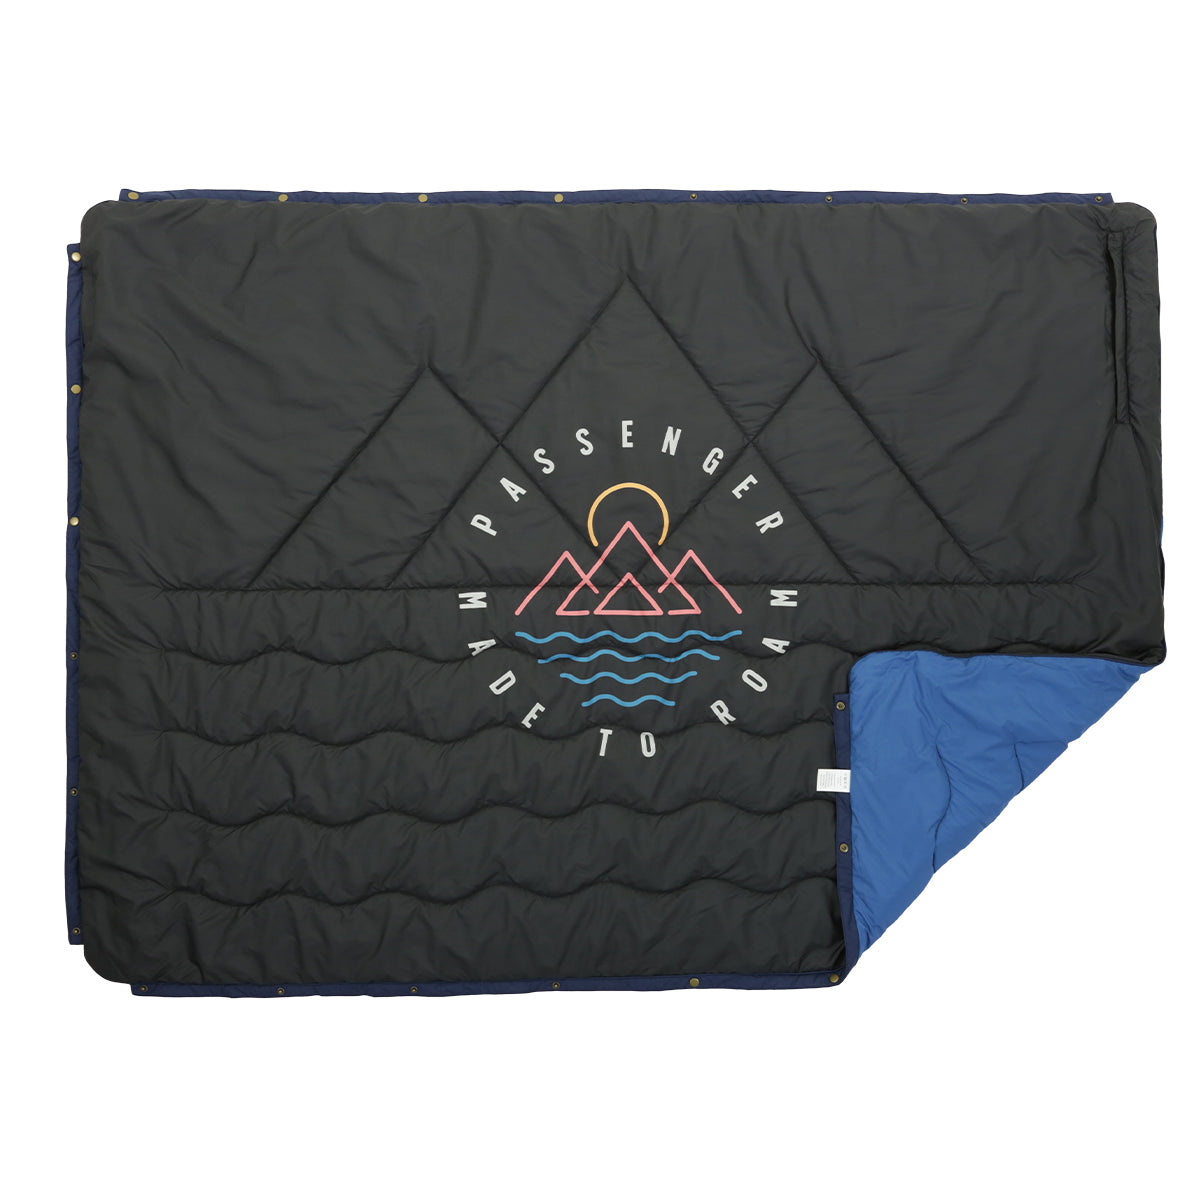 Nomadics 1 Person Insulated Blanket - Deep Water Blue & Charcoal image 2